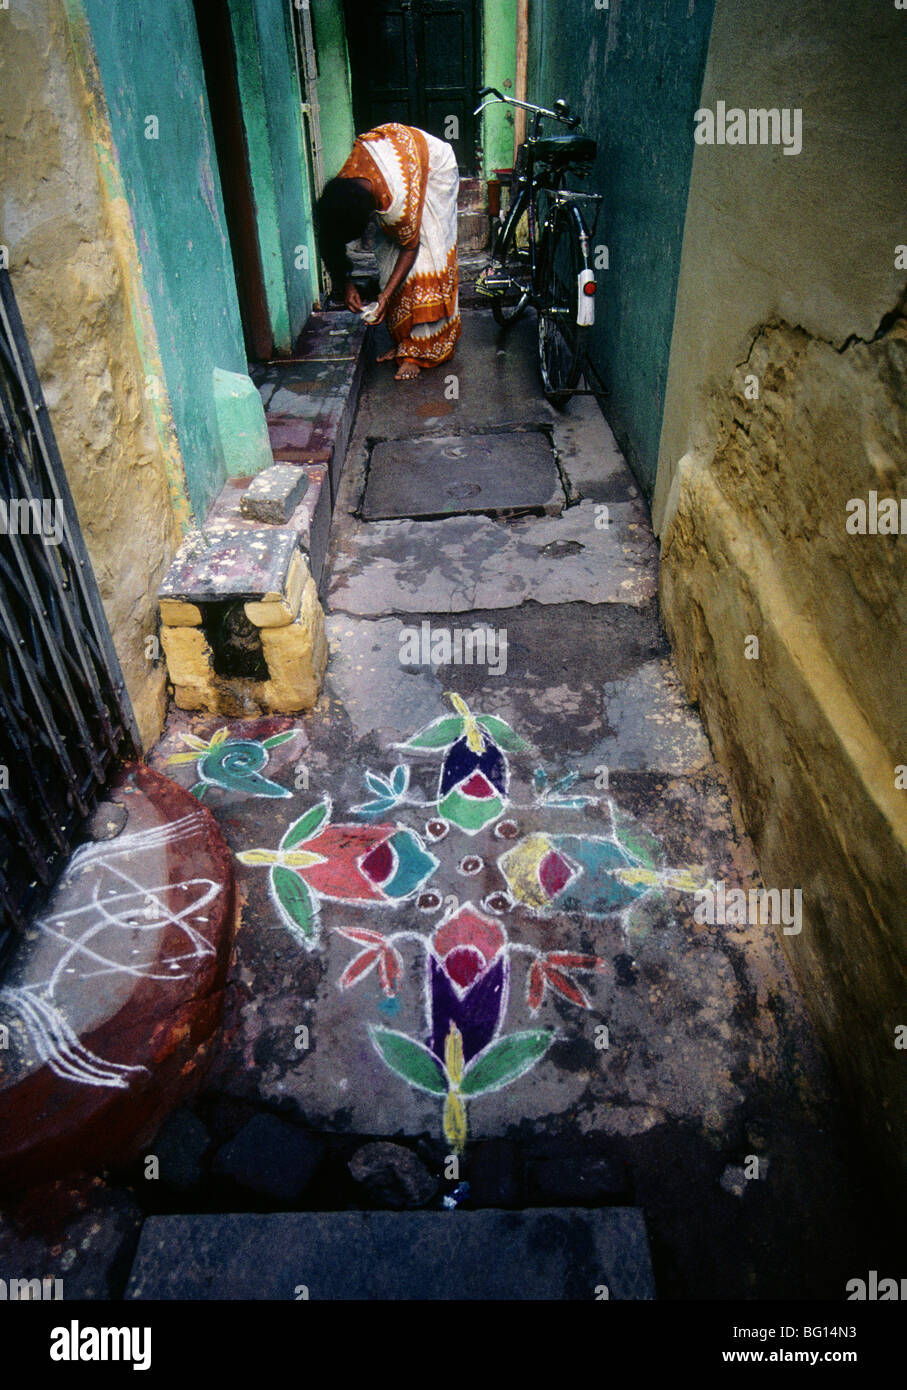 At the Pongol (harves) festival in Madurai, India every home has a beautiful chalk drawing on the ground outside - Stock Image